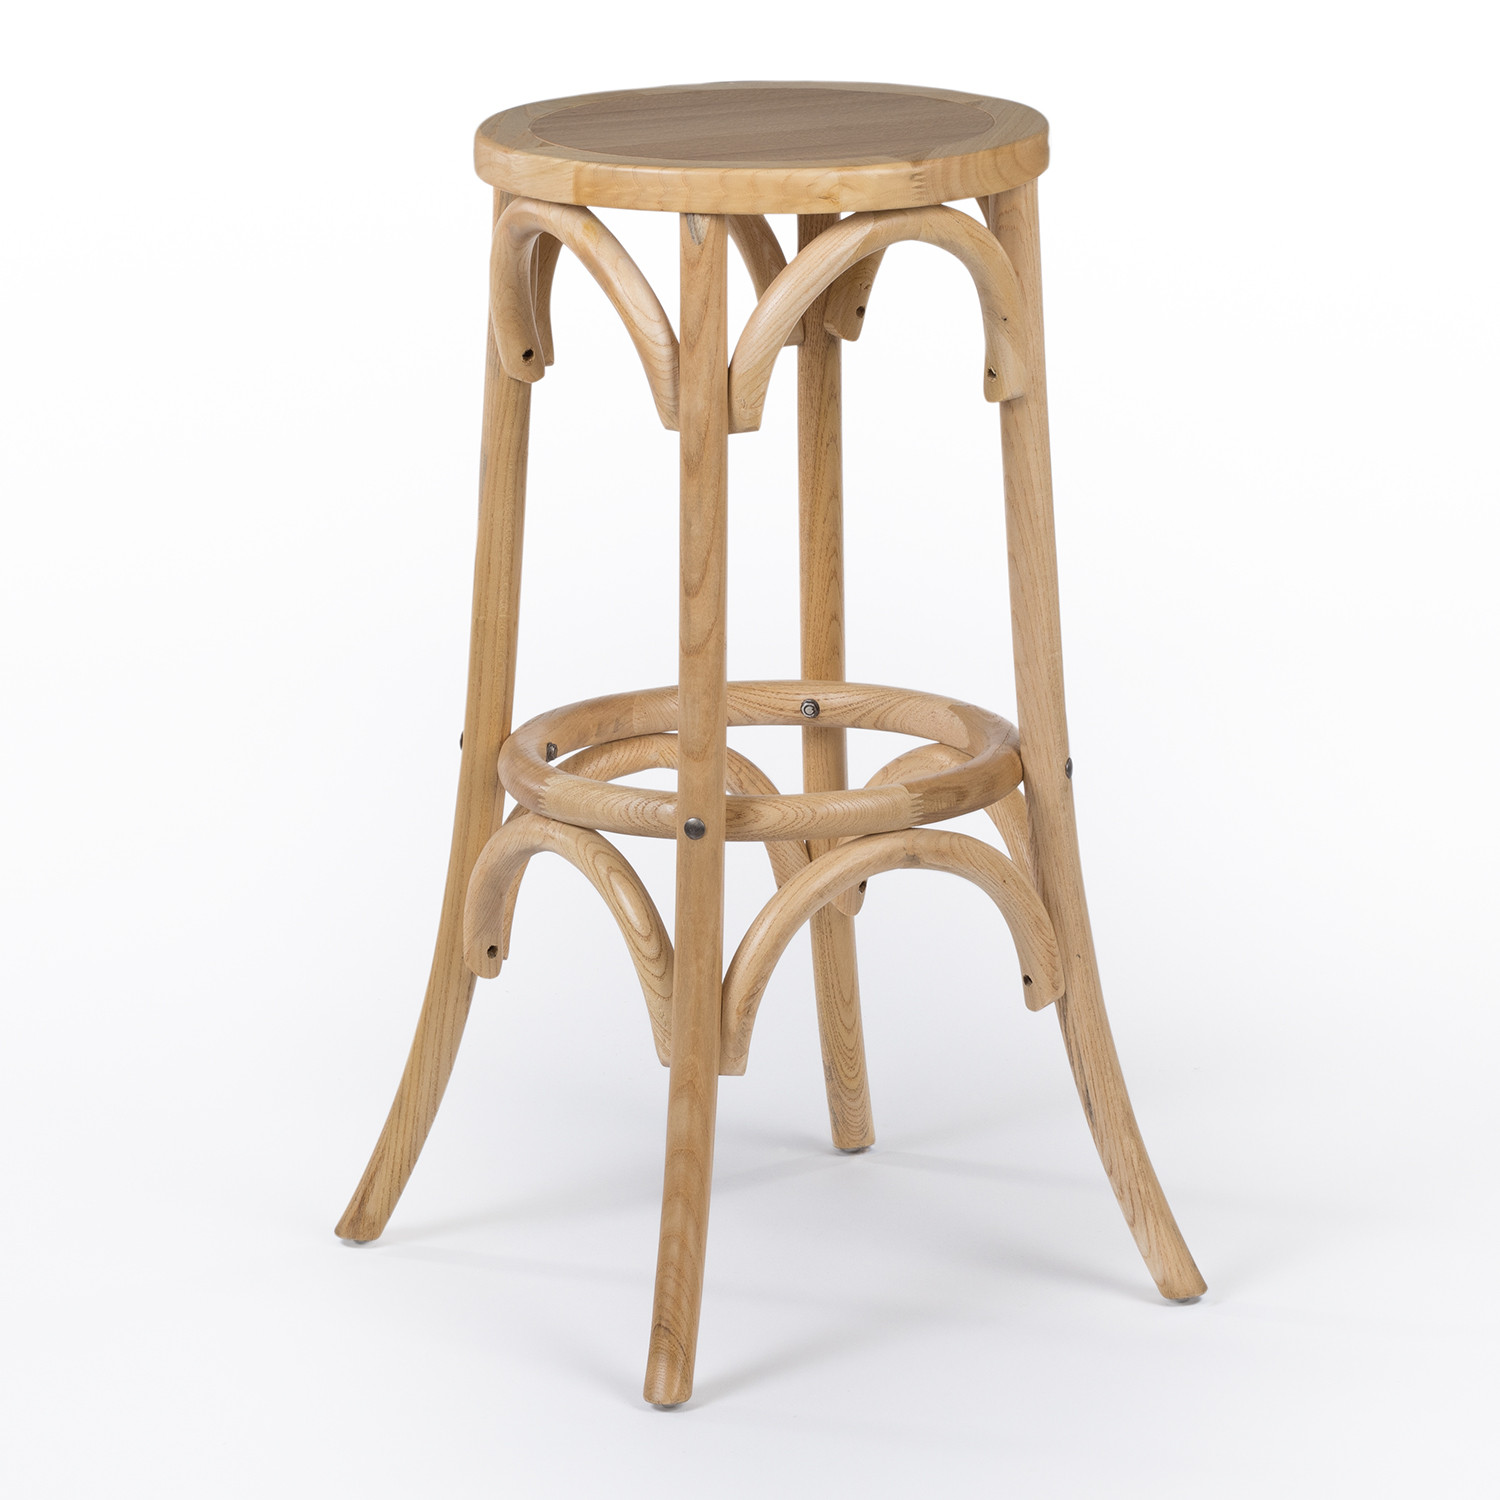 Thon Natural Wood High Stool, gallery image 1